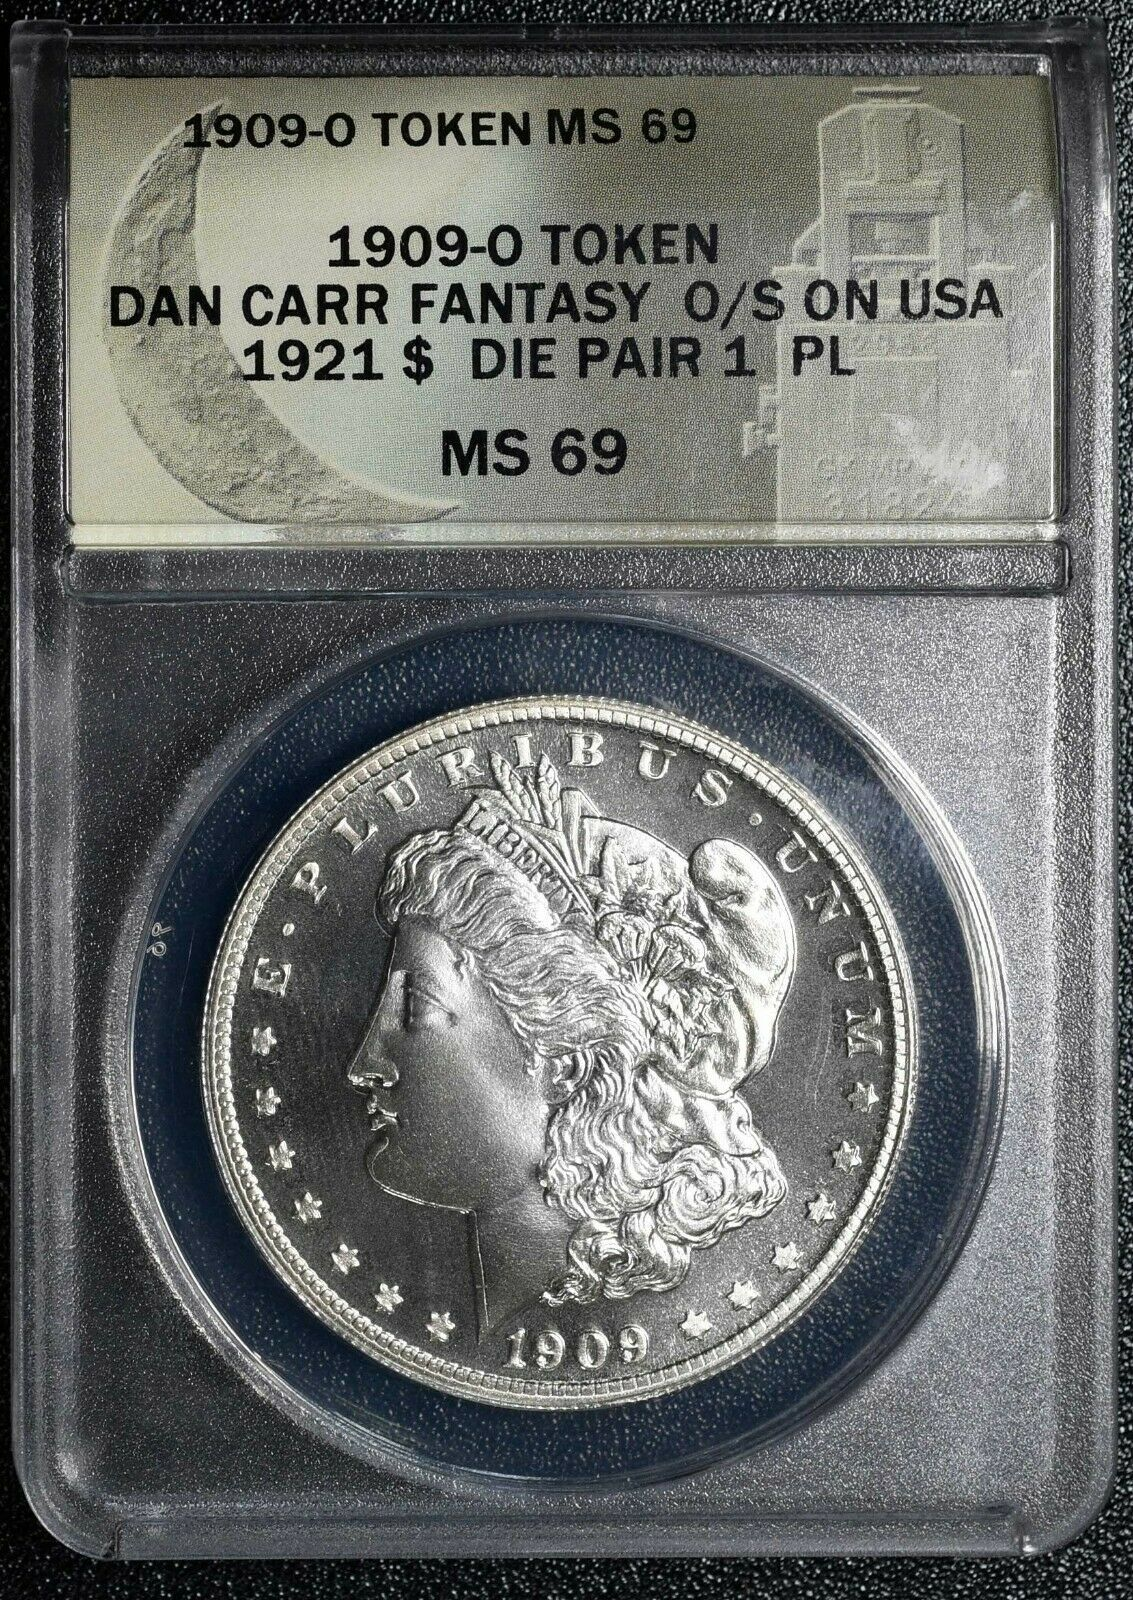 1909O Token Dan Carr Fantasy Struck on Morgan Dollar ANACS MS69 PL Lot# A 462